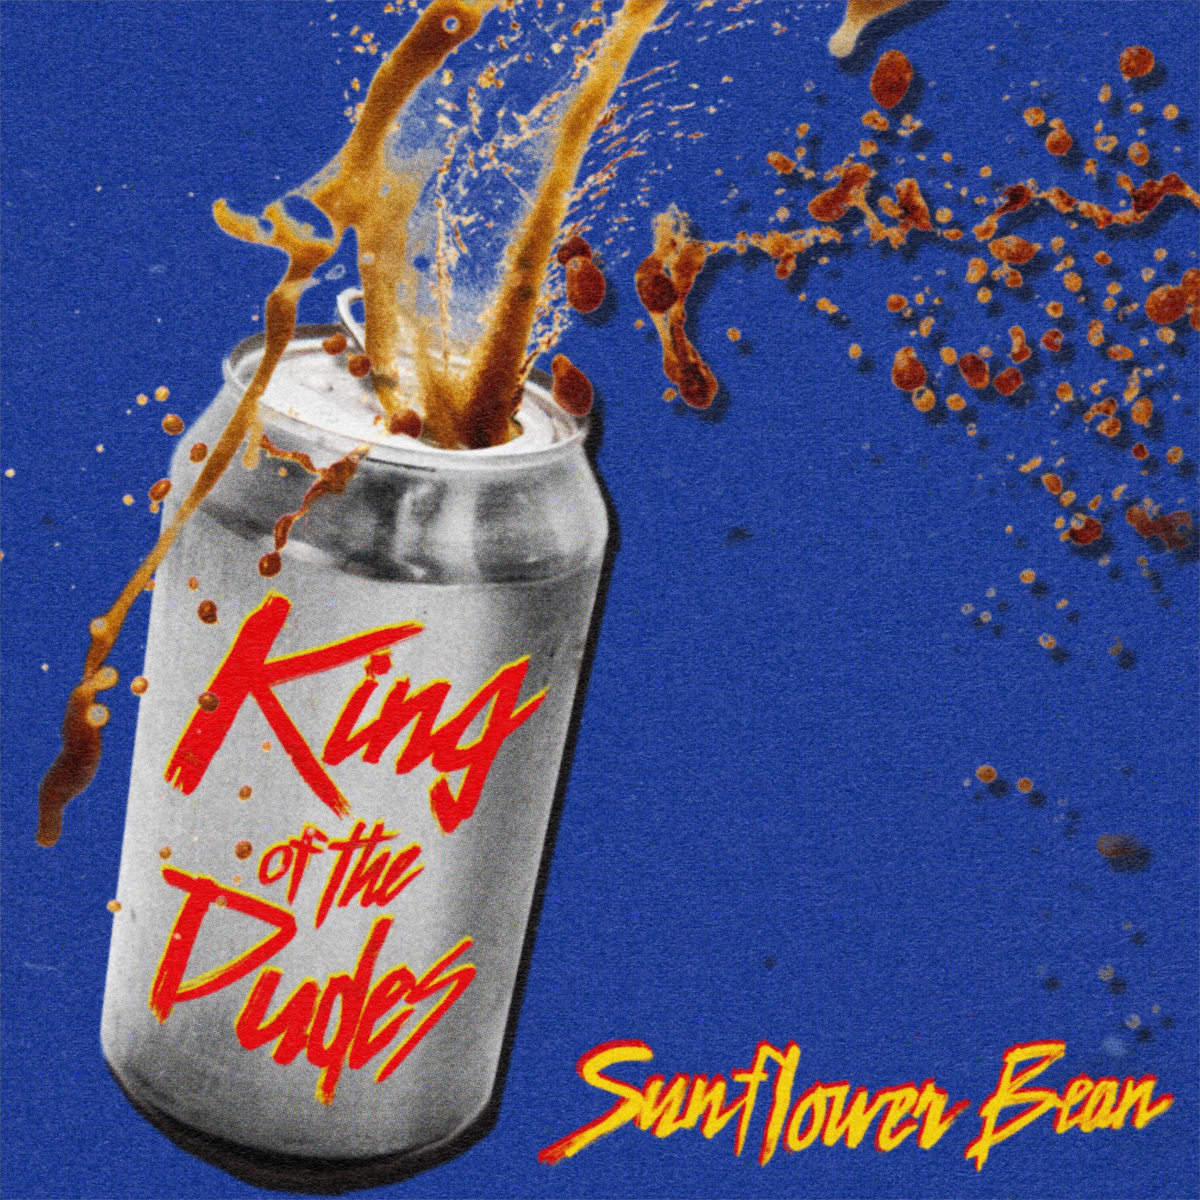 Sunflower Bean - King of the Dudes Cover Art